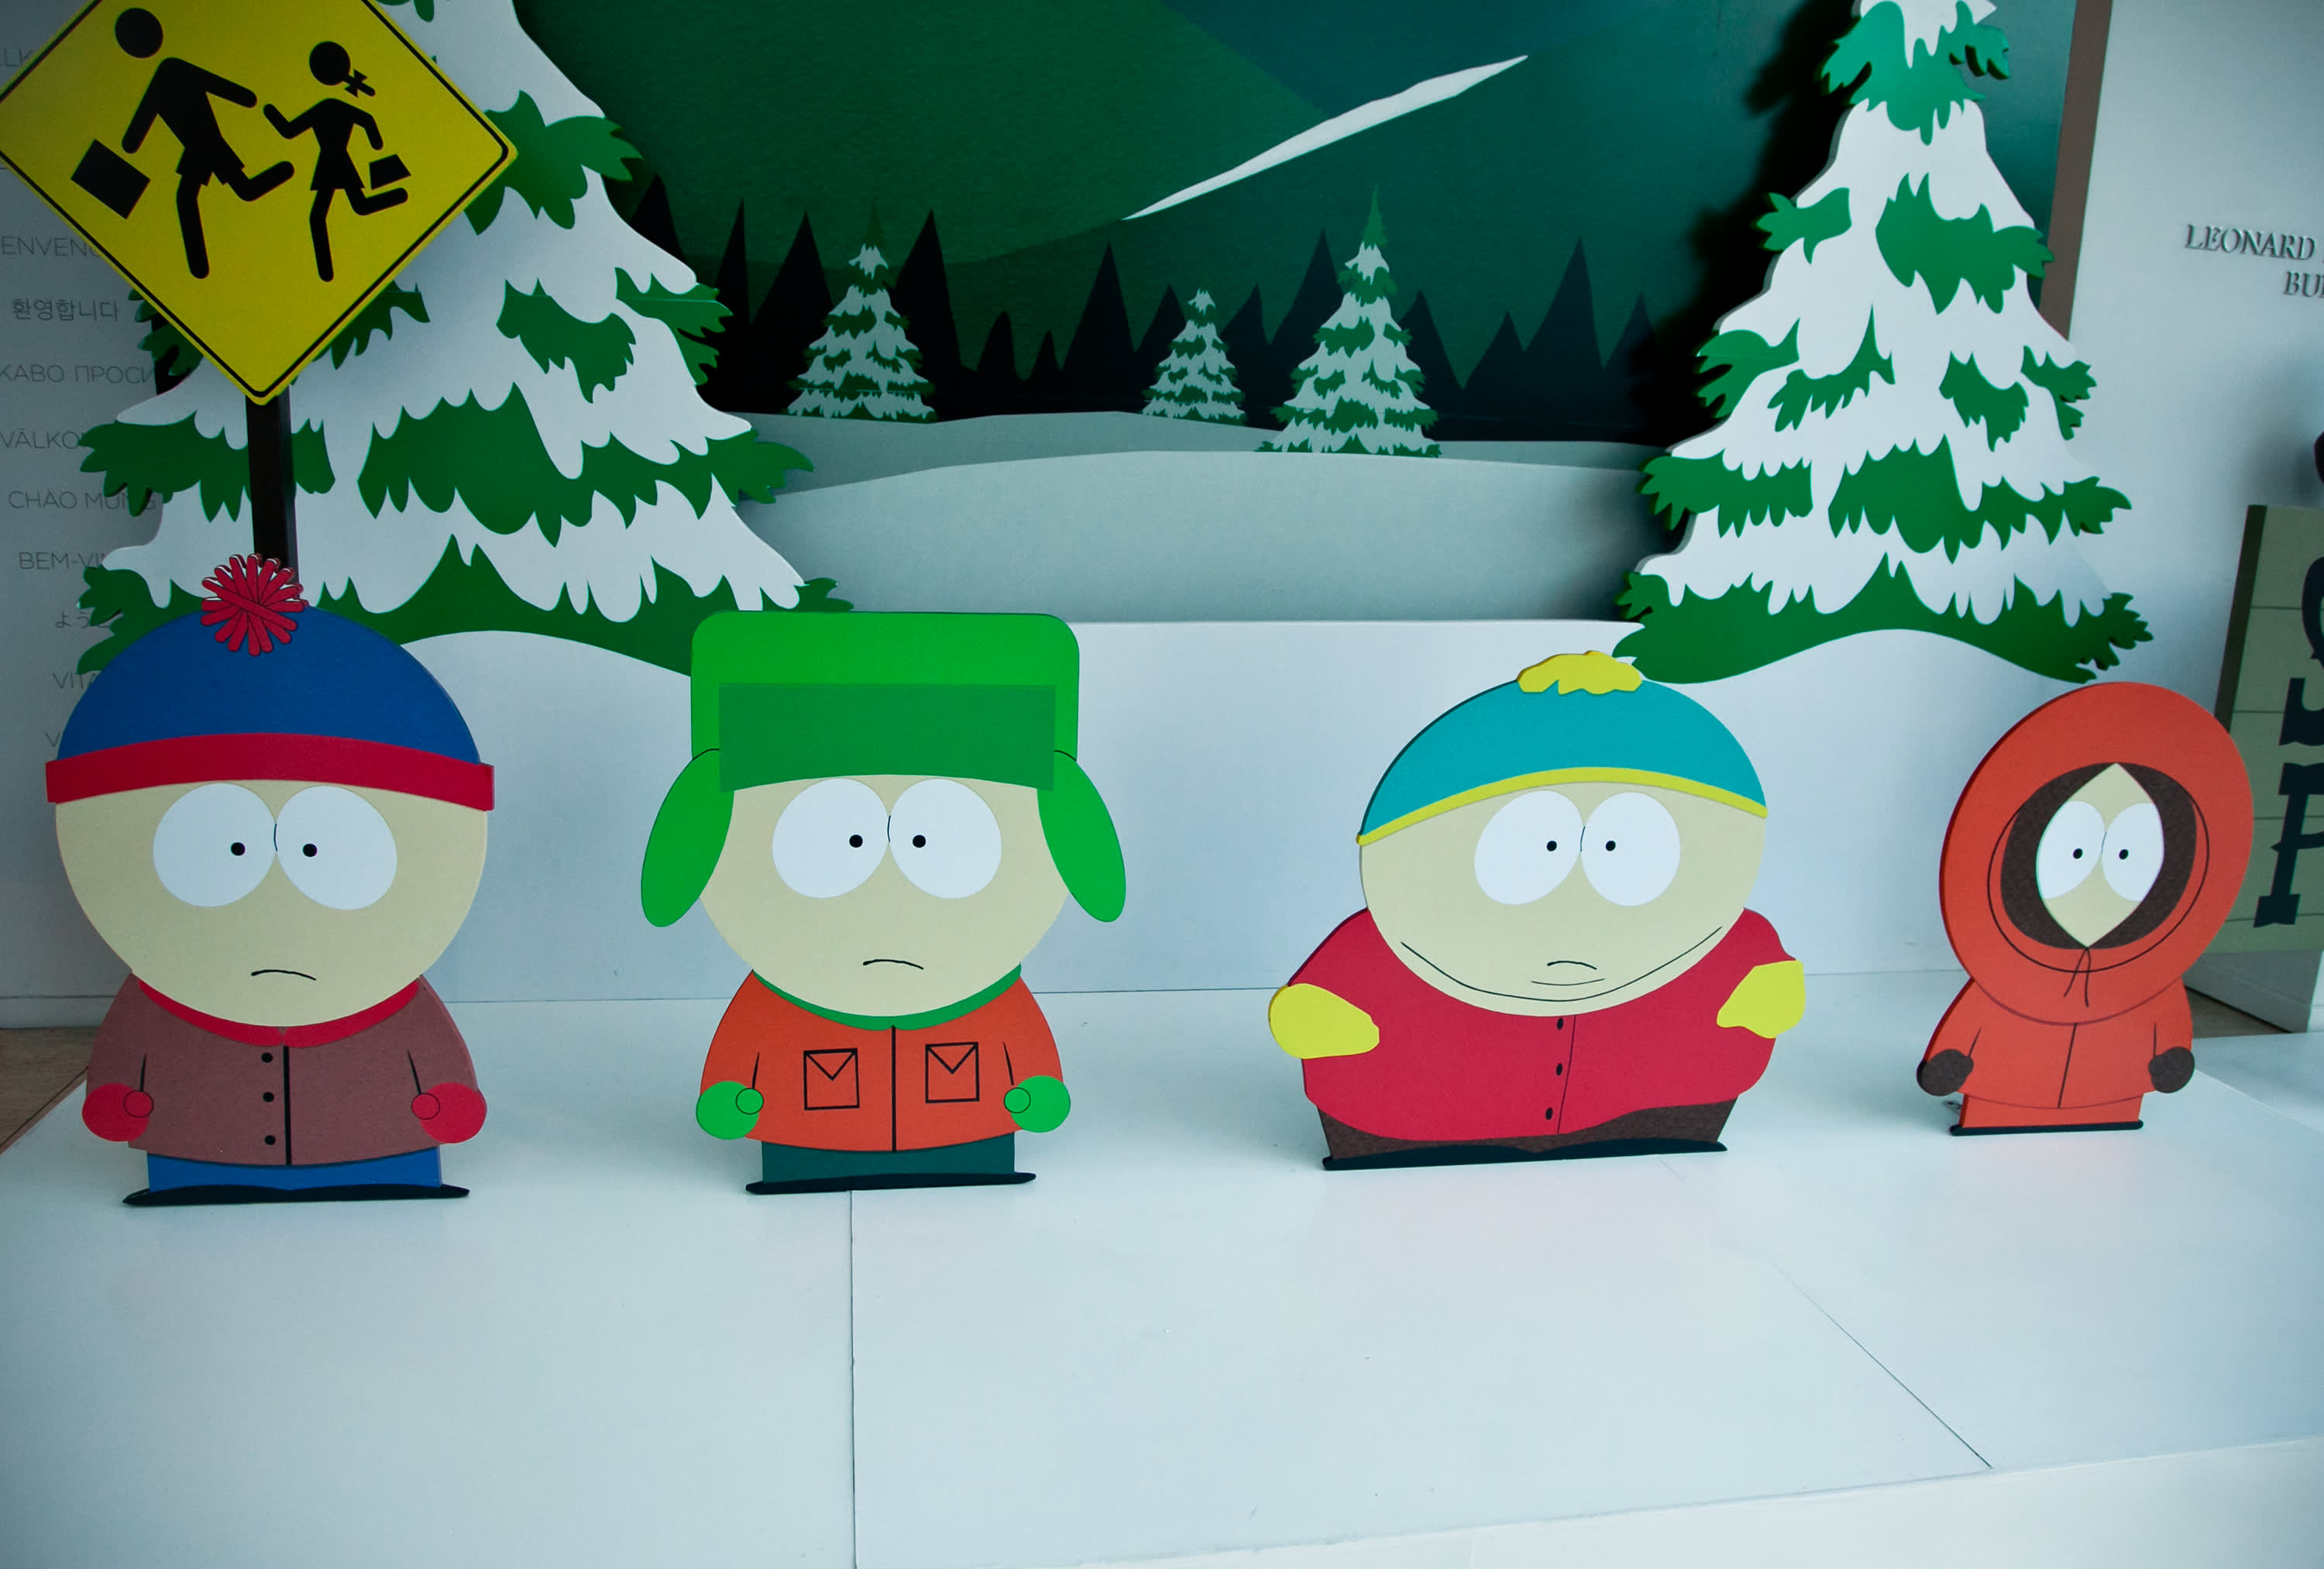 HBO Max lands exclusive streaming rights to 'South Park'